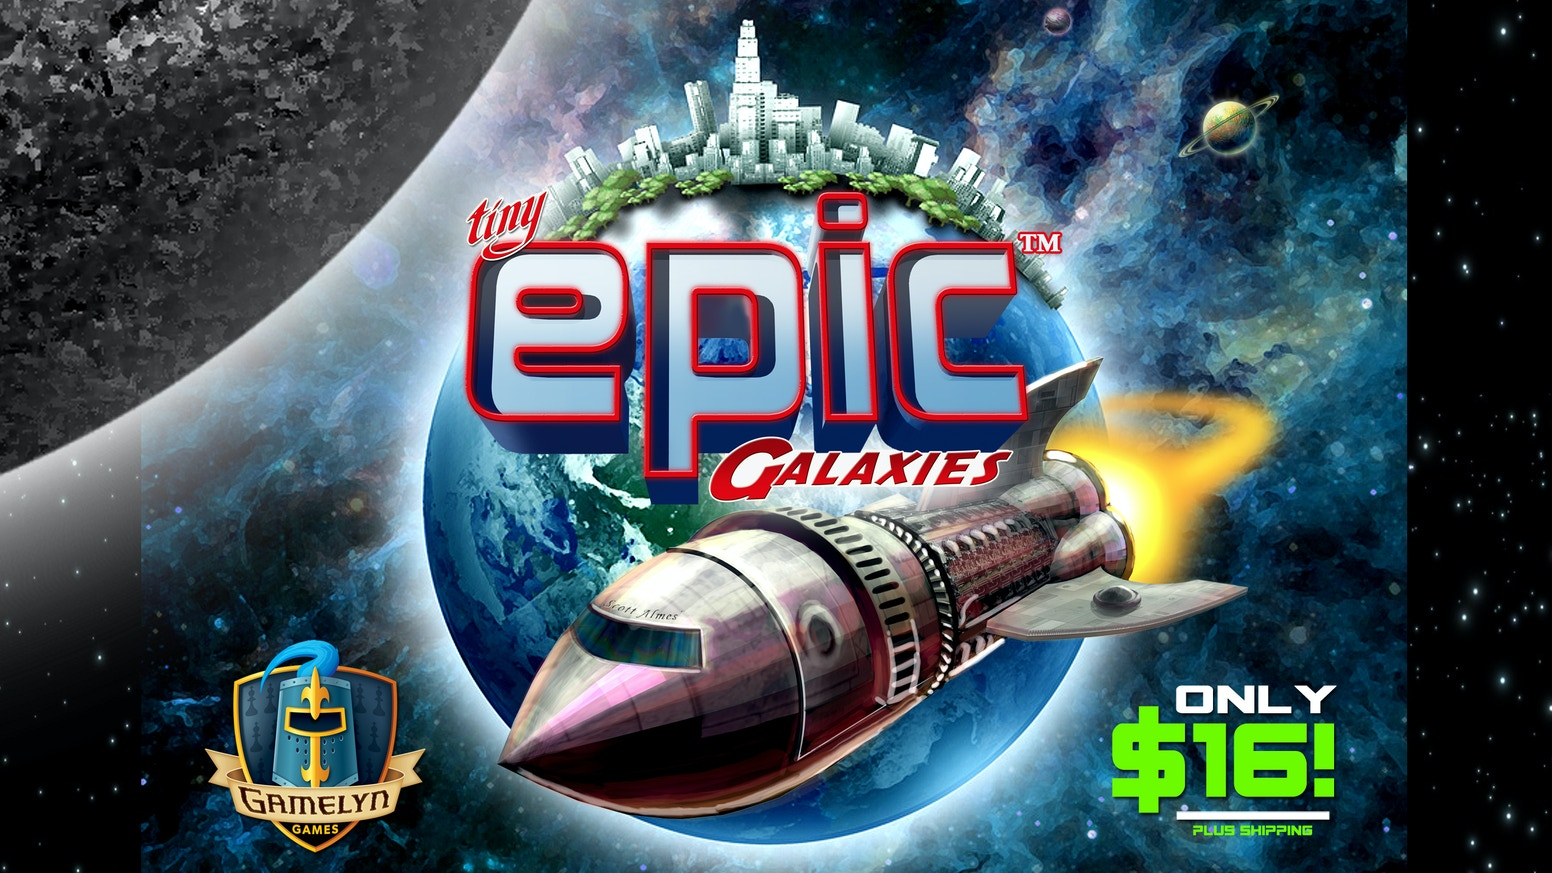 30min MICROGAME of Intergalactic Conquest for 1-5 Players! Develop your empire and colonize planets to create the most powerful galaxy!